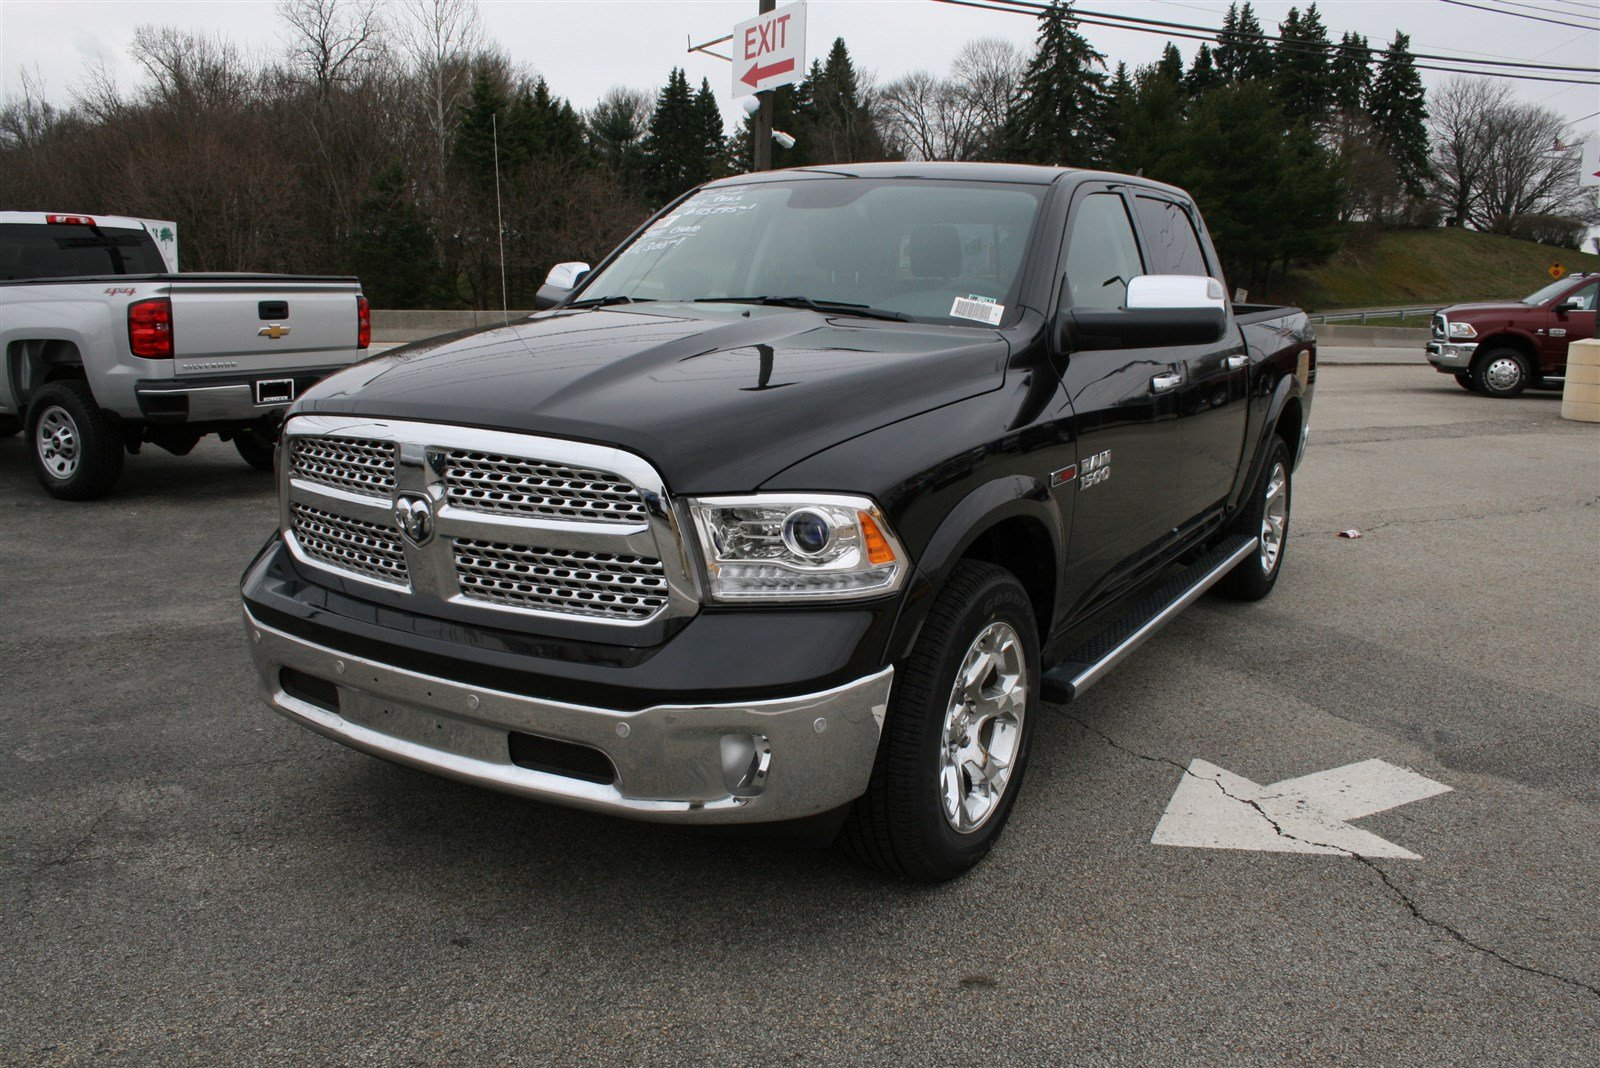 New 2017 RAM 1500 Laramie Crew Cab in Greensburg D5254